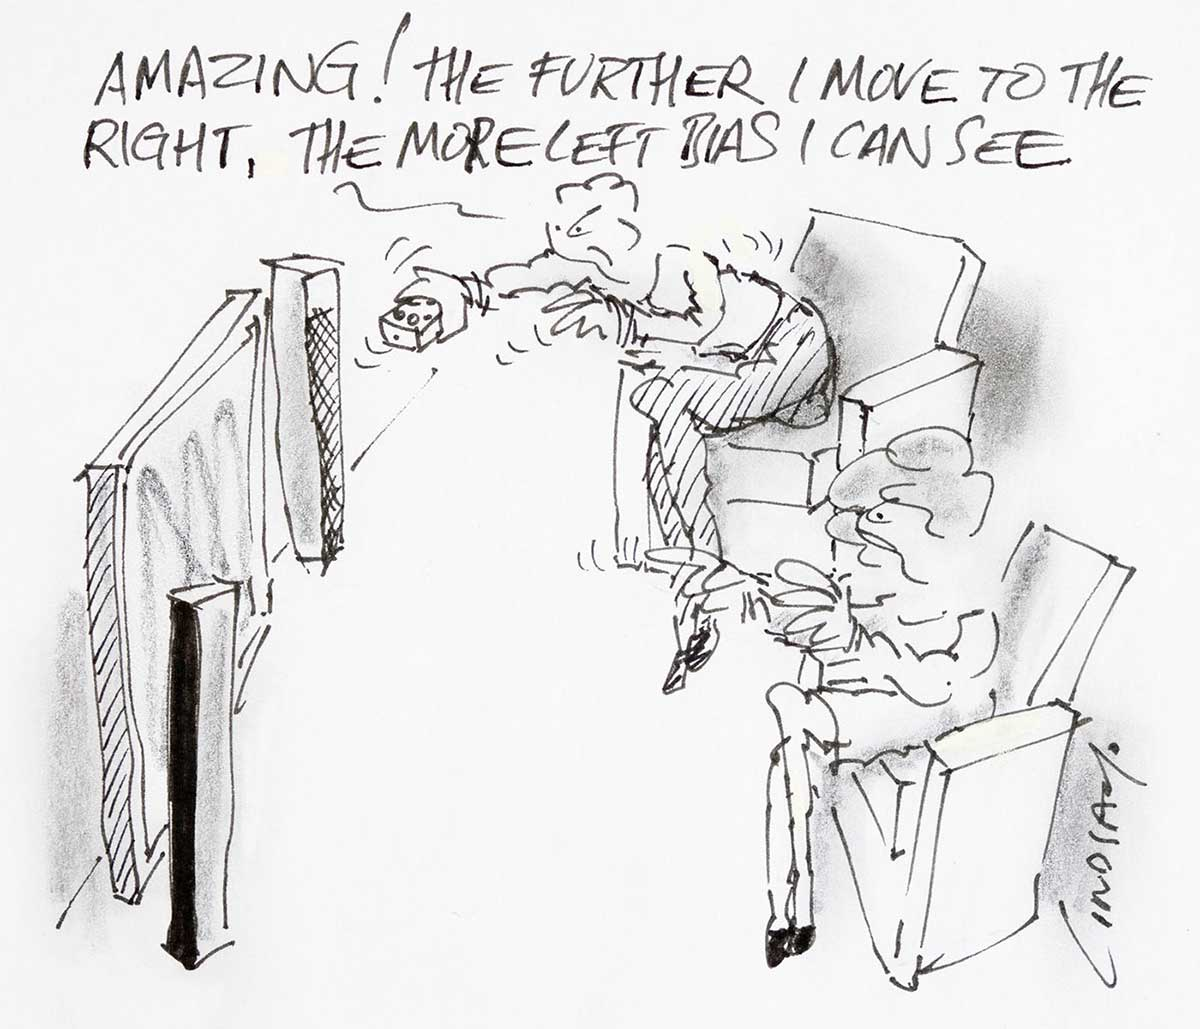 "Cartoon of two people watching ABC TV and one person commenting, ""Amazing!, the further I move to the right, the more left bias I can see"" - click to view larger image"